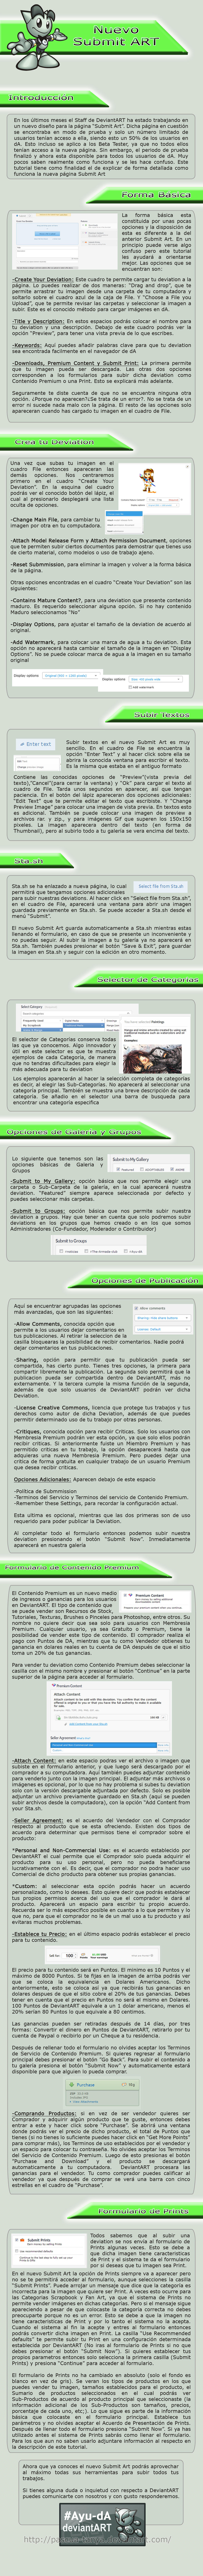 Tutorial: Nuevo Submit Art by Pascua-Tanya on DeviantArt